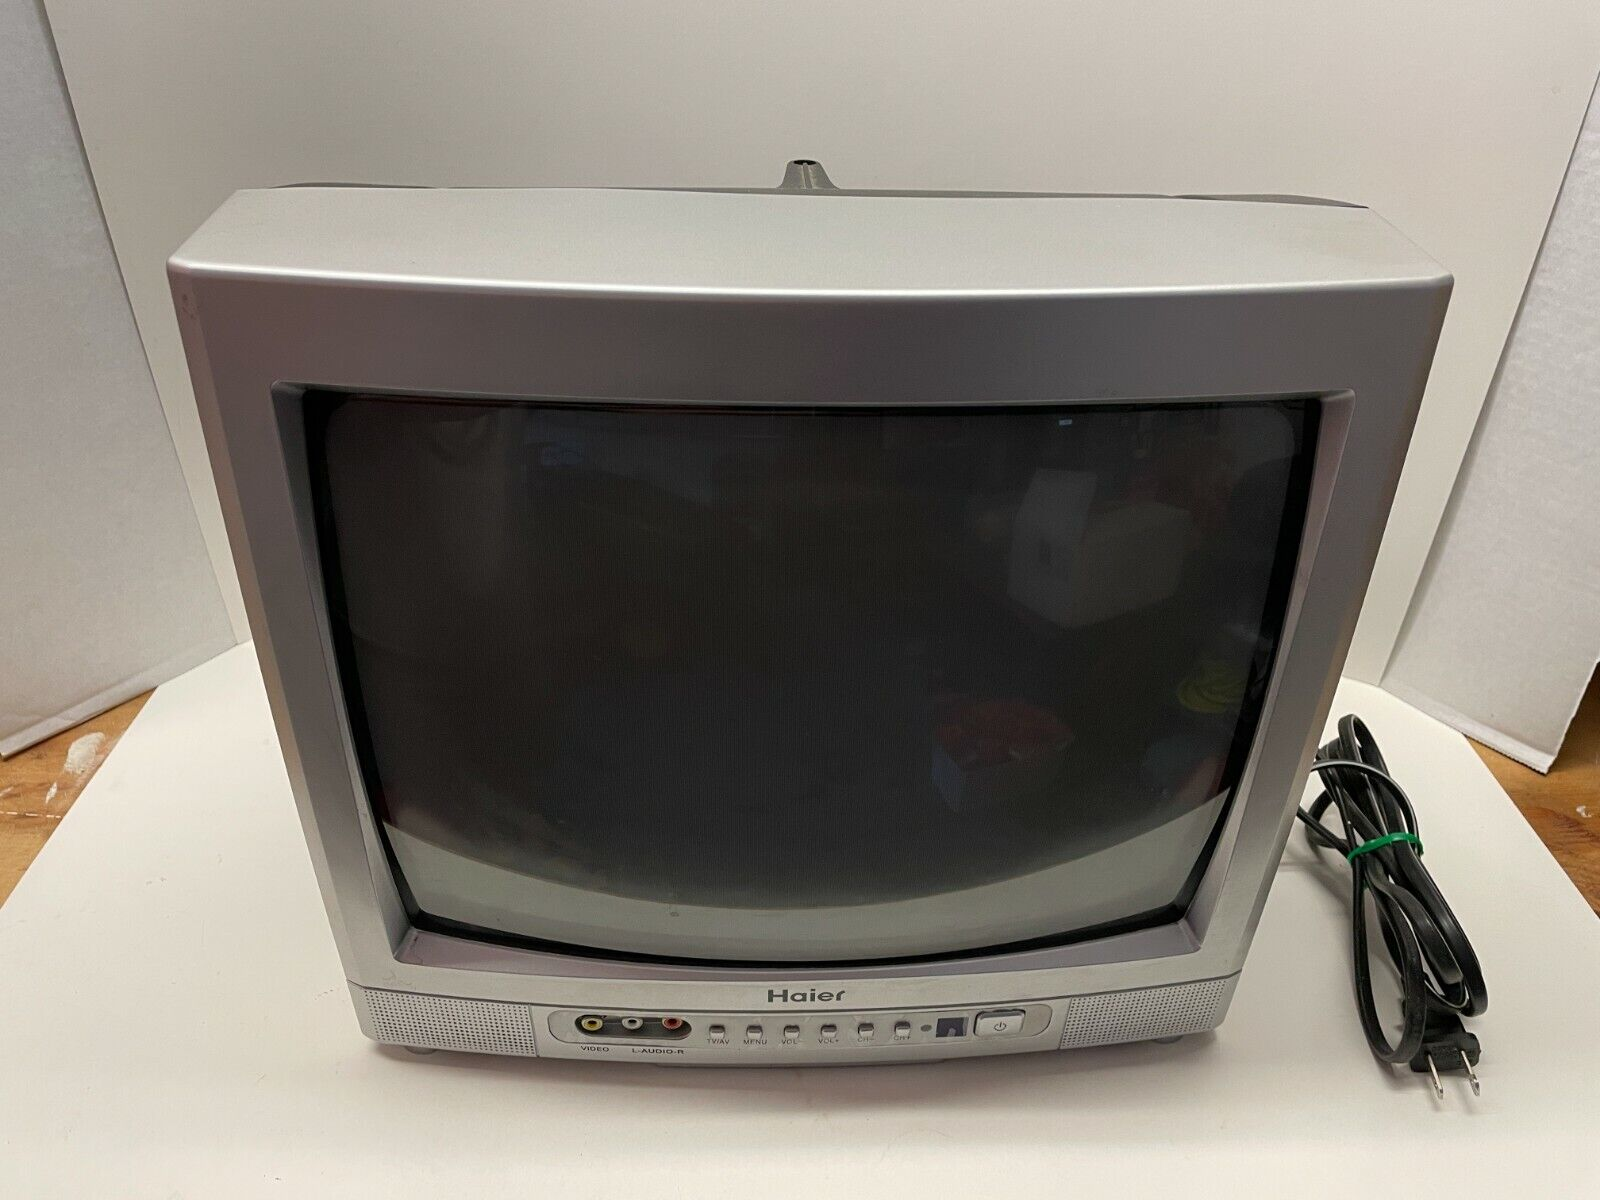 """Haier HTR-13A CRT TV - 13"""" Television - Tested Working - Per"""